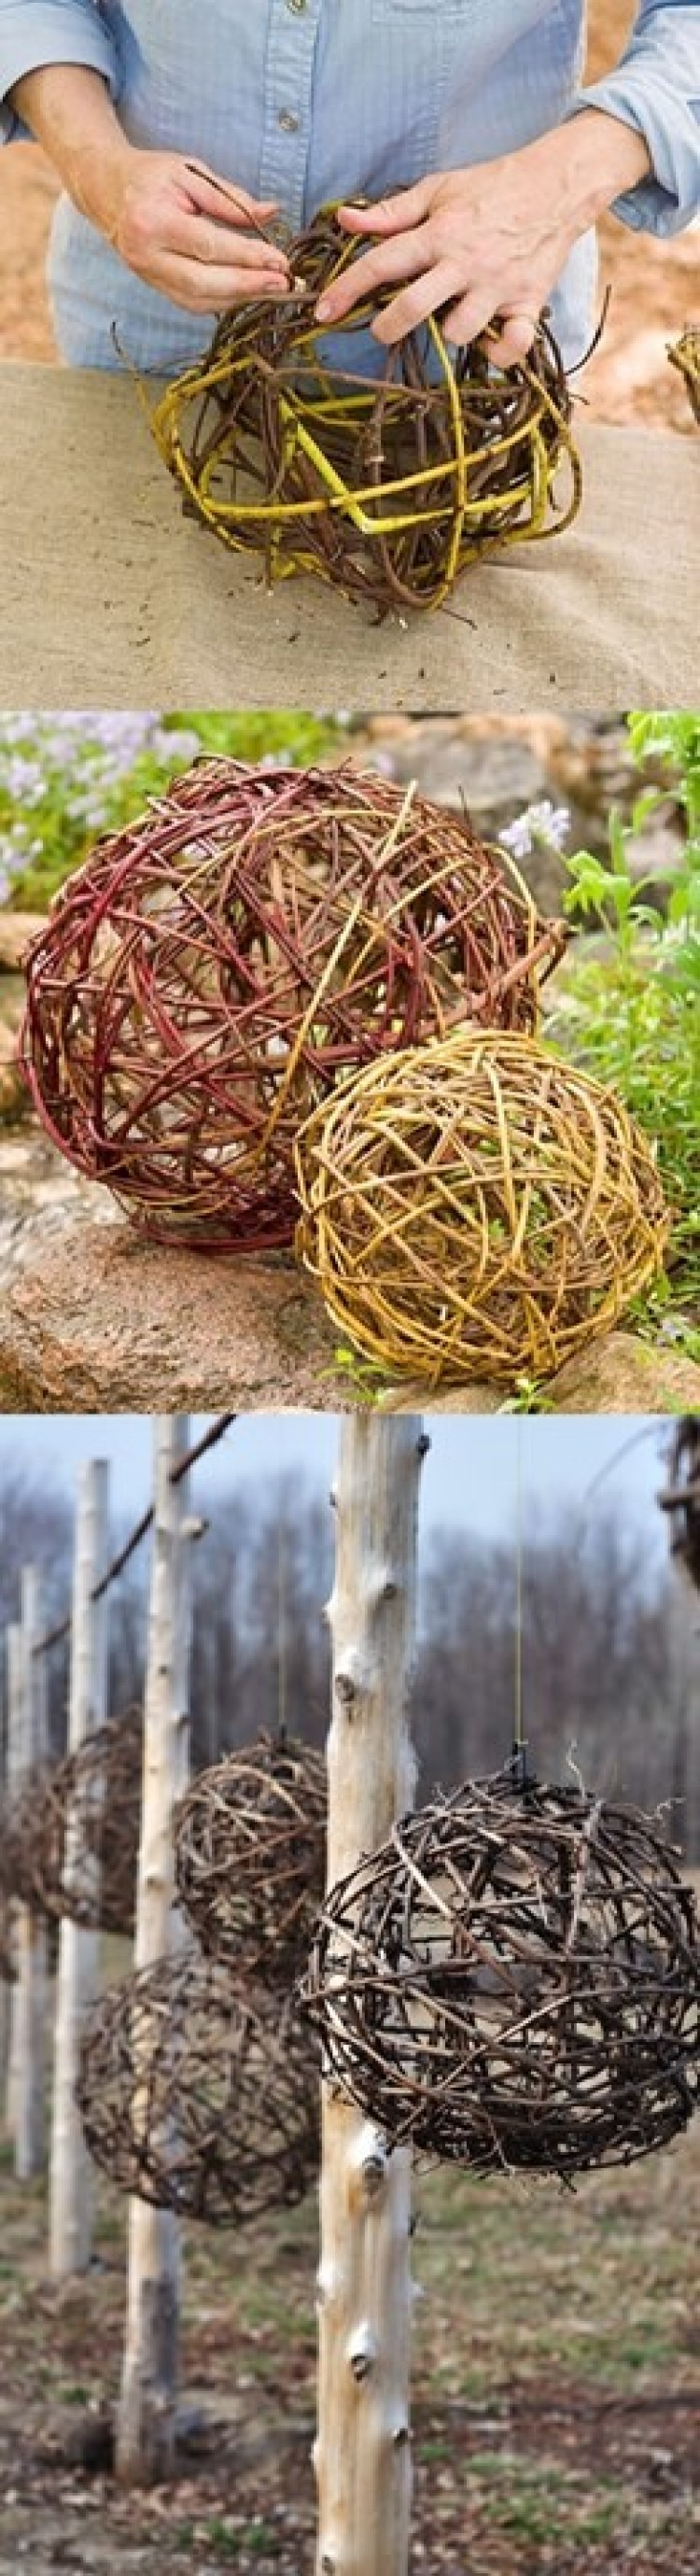 Round And Attractive Garden Decor That You Can Create Yourself #projekteimfreien Round And Attractive Garden Decor That You Can Create Yourself - Tiredbee.com #projekteimfreien